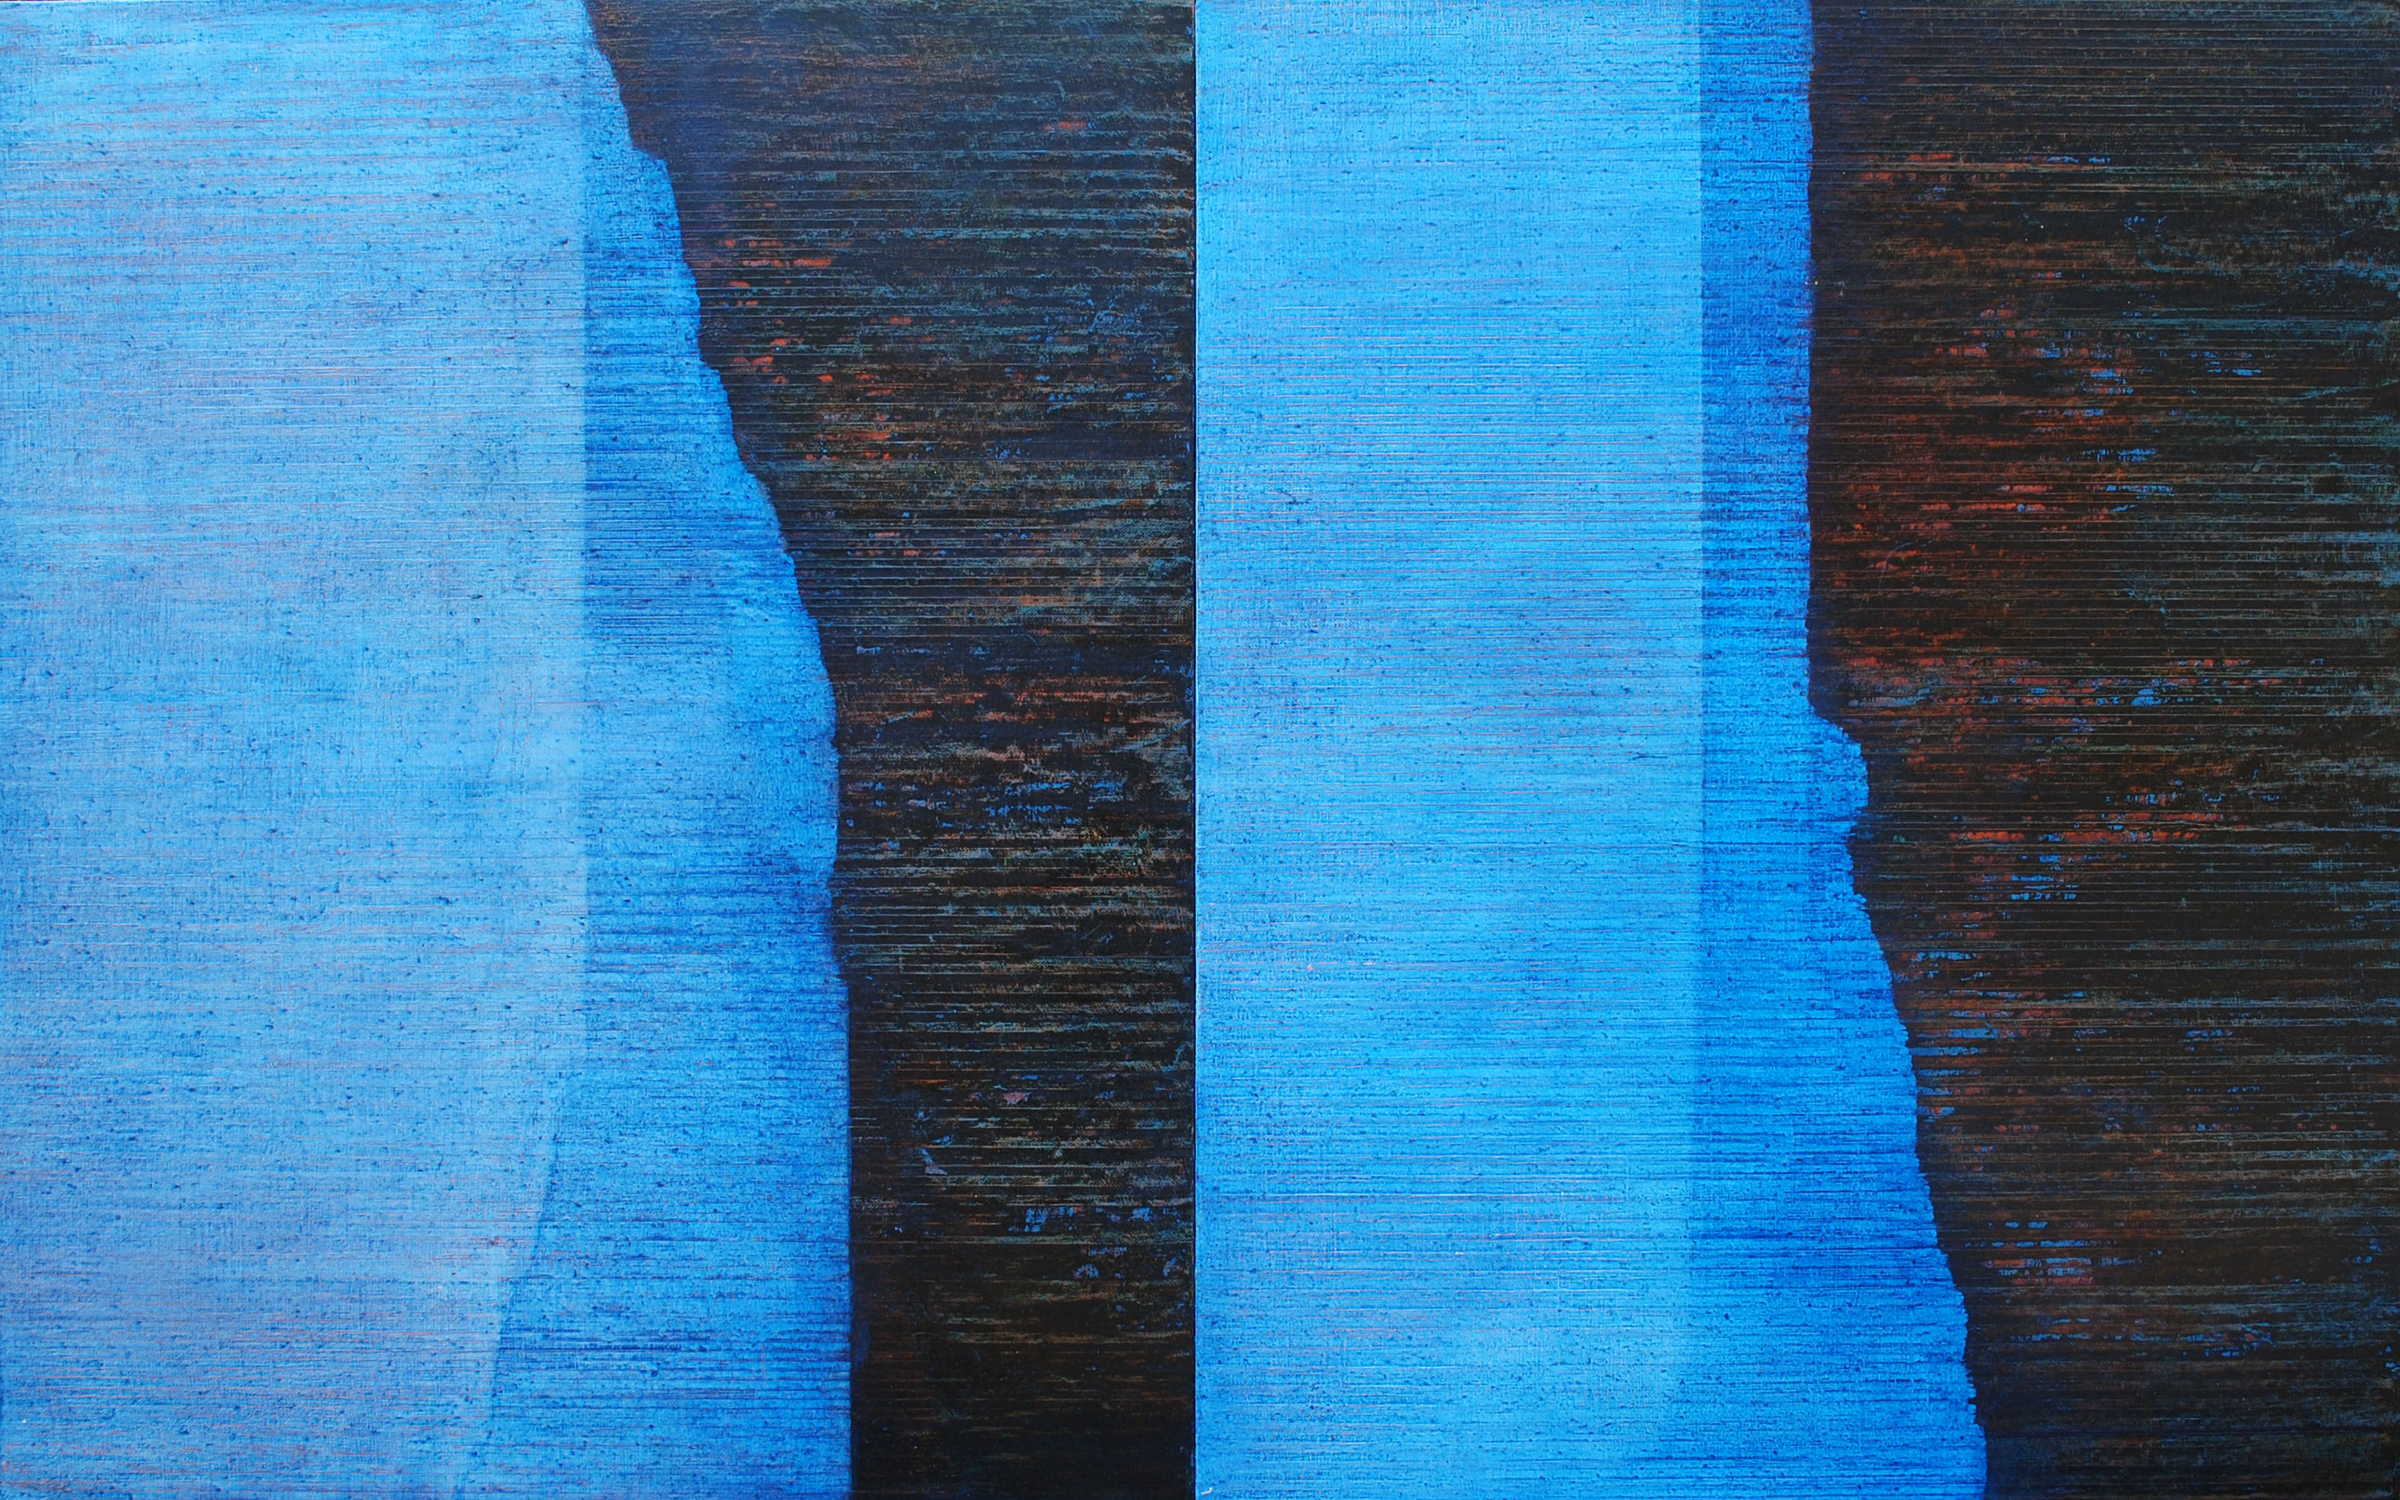 Linea Terminale: 12.12, 2012, Oil on linen over panels, 20 x 36 inches.